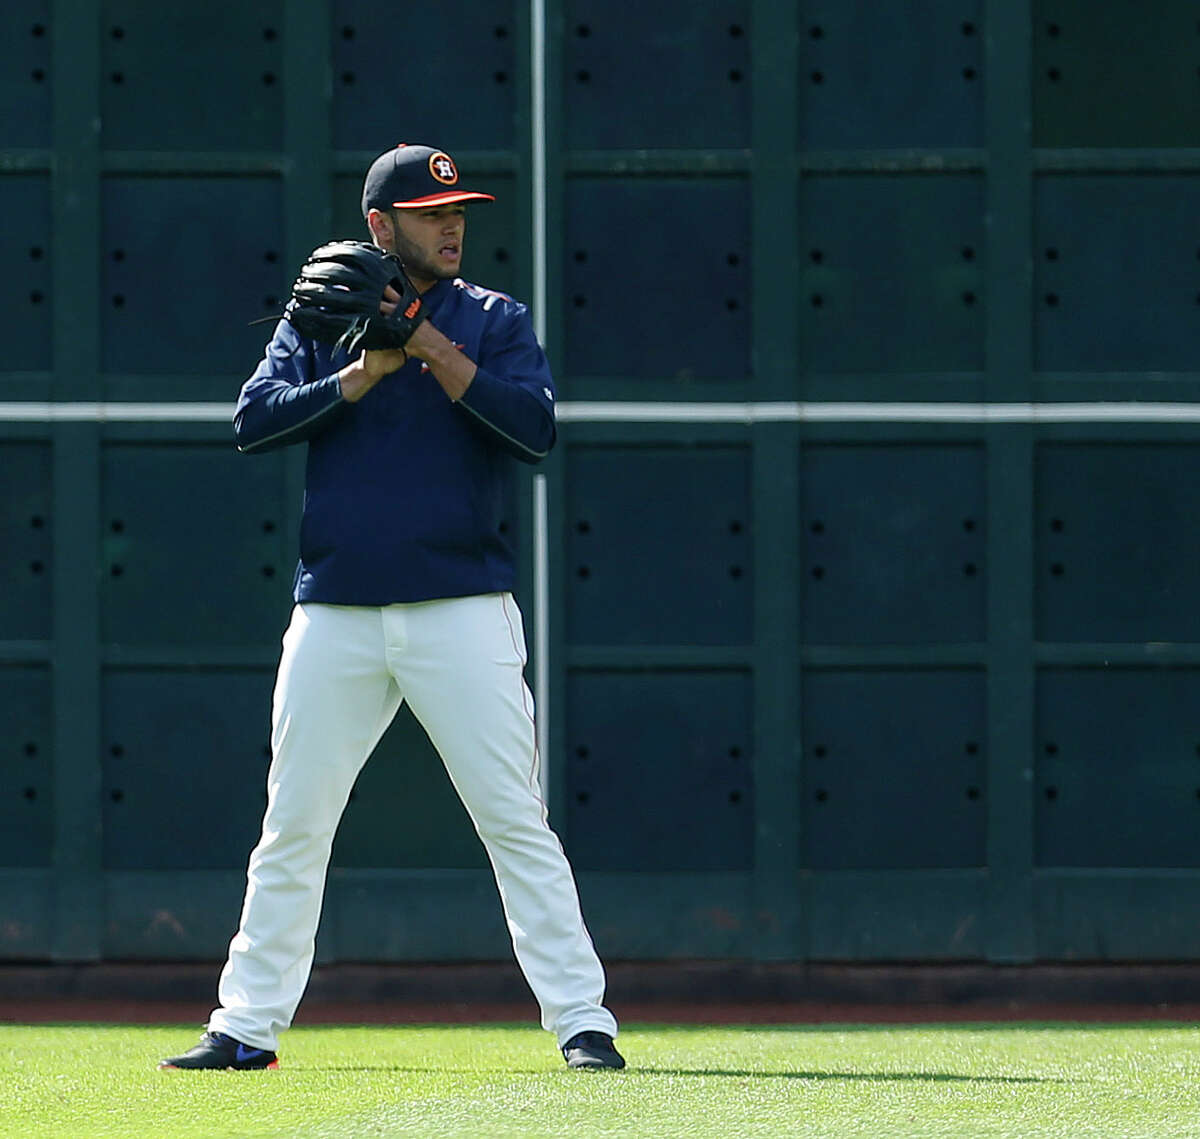 Houston Astros starting pitcher Lance McCullers shags balls in the outfield during batting practice before an MLB baseball game at Minute Maid Park, Friday, April 15, 2016, in Houston.